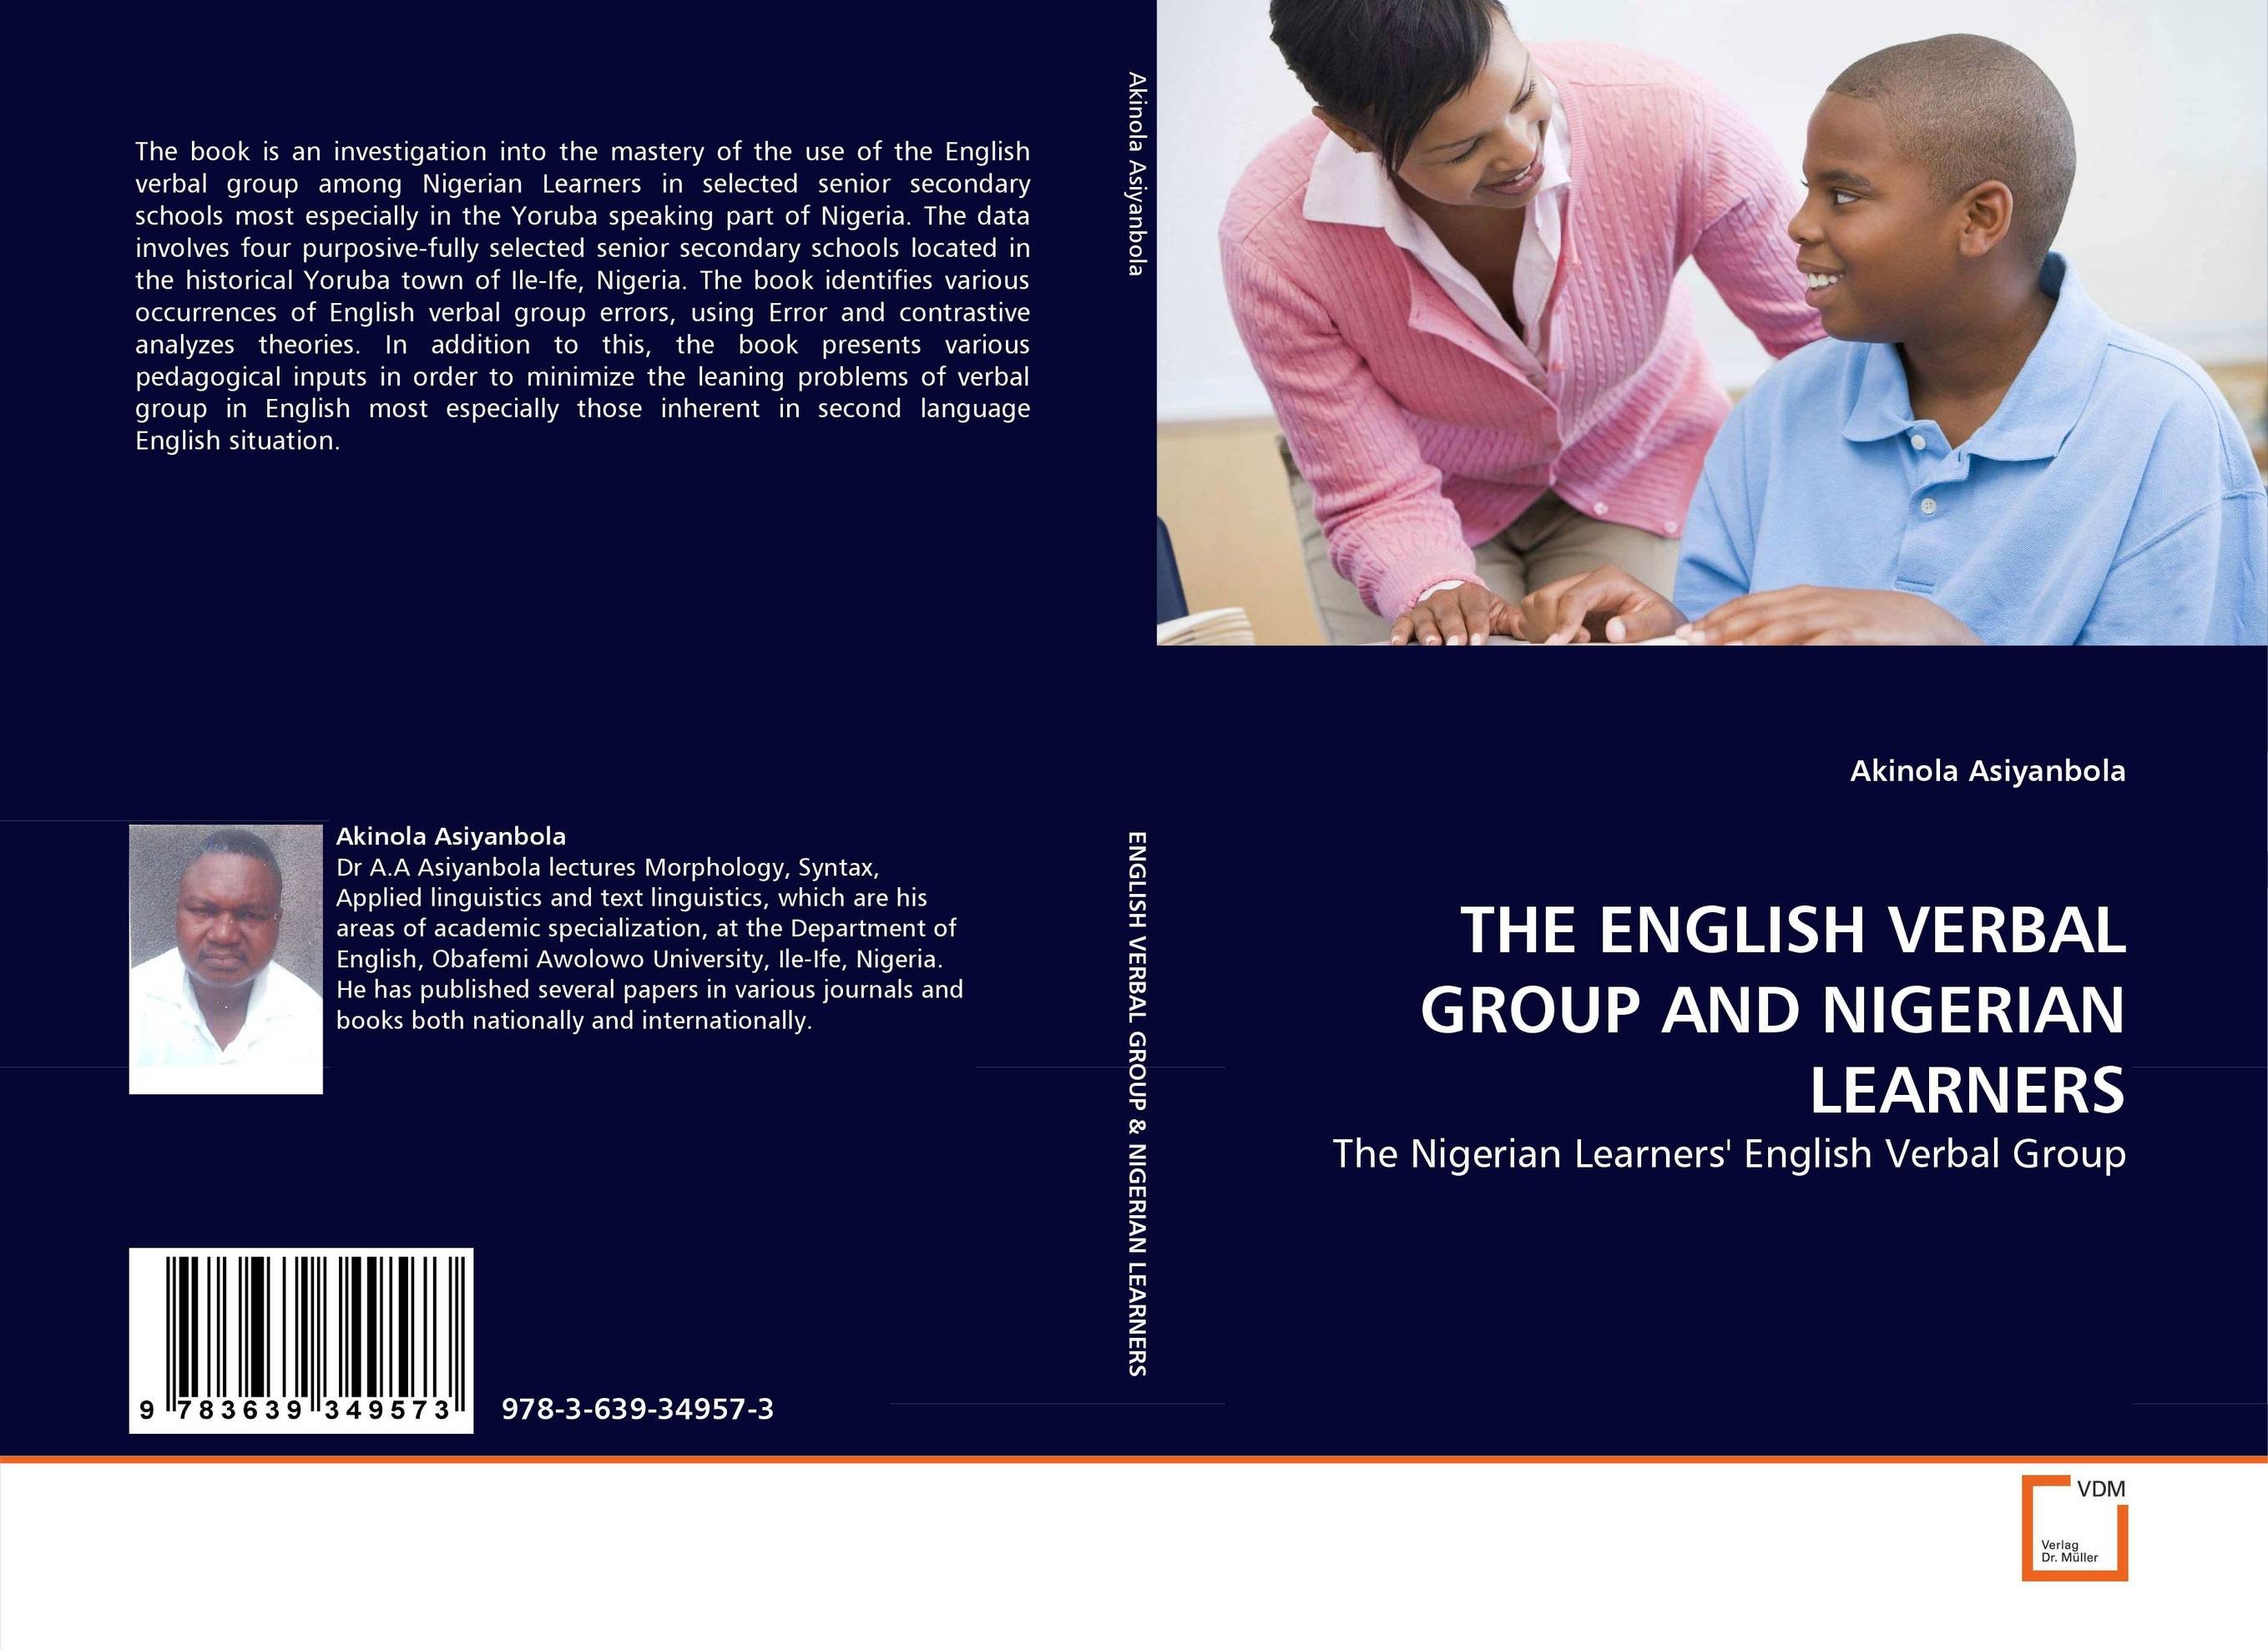 THE ENGLISH VERBAL GROUP AND NIGERIAN LEARNERS kulwindr kaur gurdial singh anne benedict nair and saroja dhanapal language errors in written english